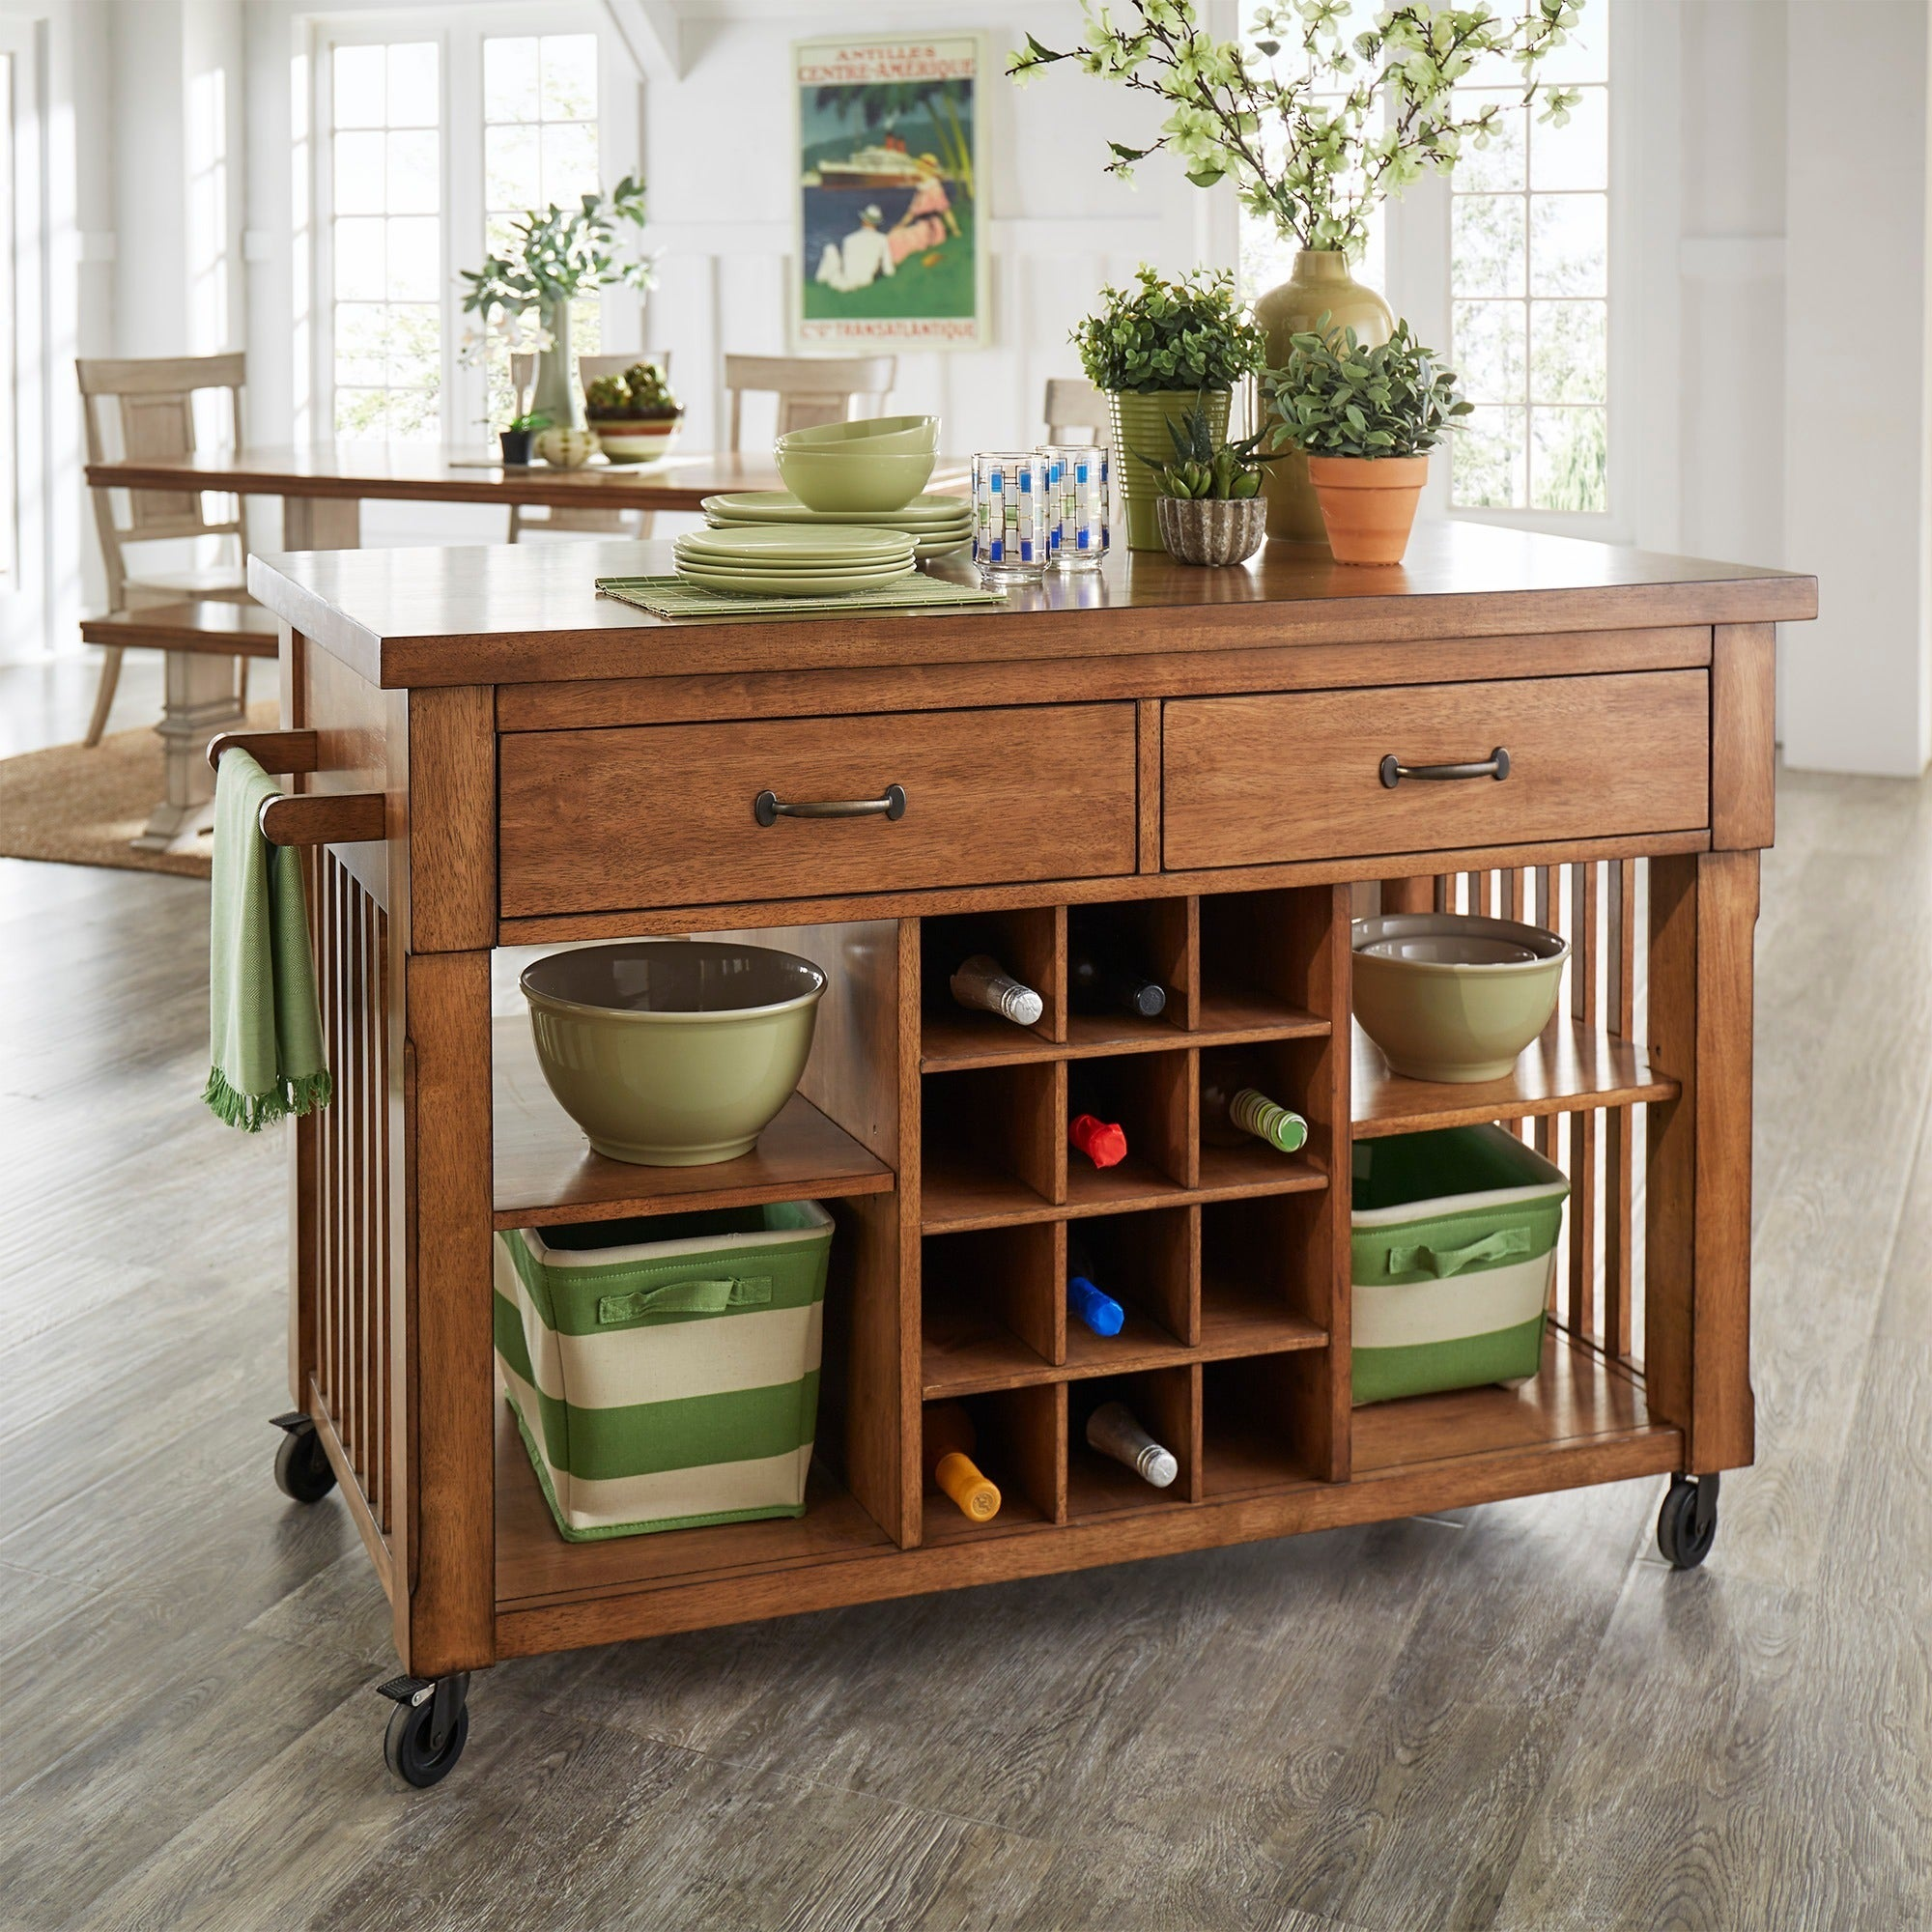 Eleanor Two-Tone Rolling Kitchen Island with Wine Rack by iNSPIRE Q Classic  - Free Shipping Today - Overstock.com - 20610111